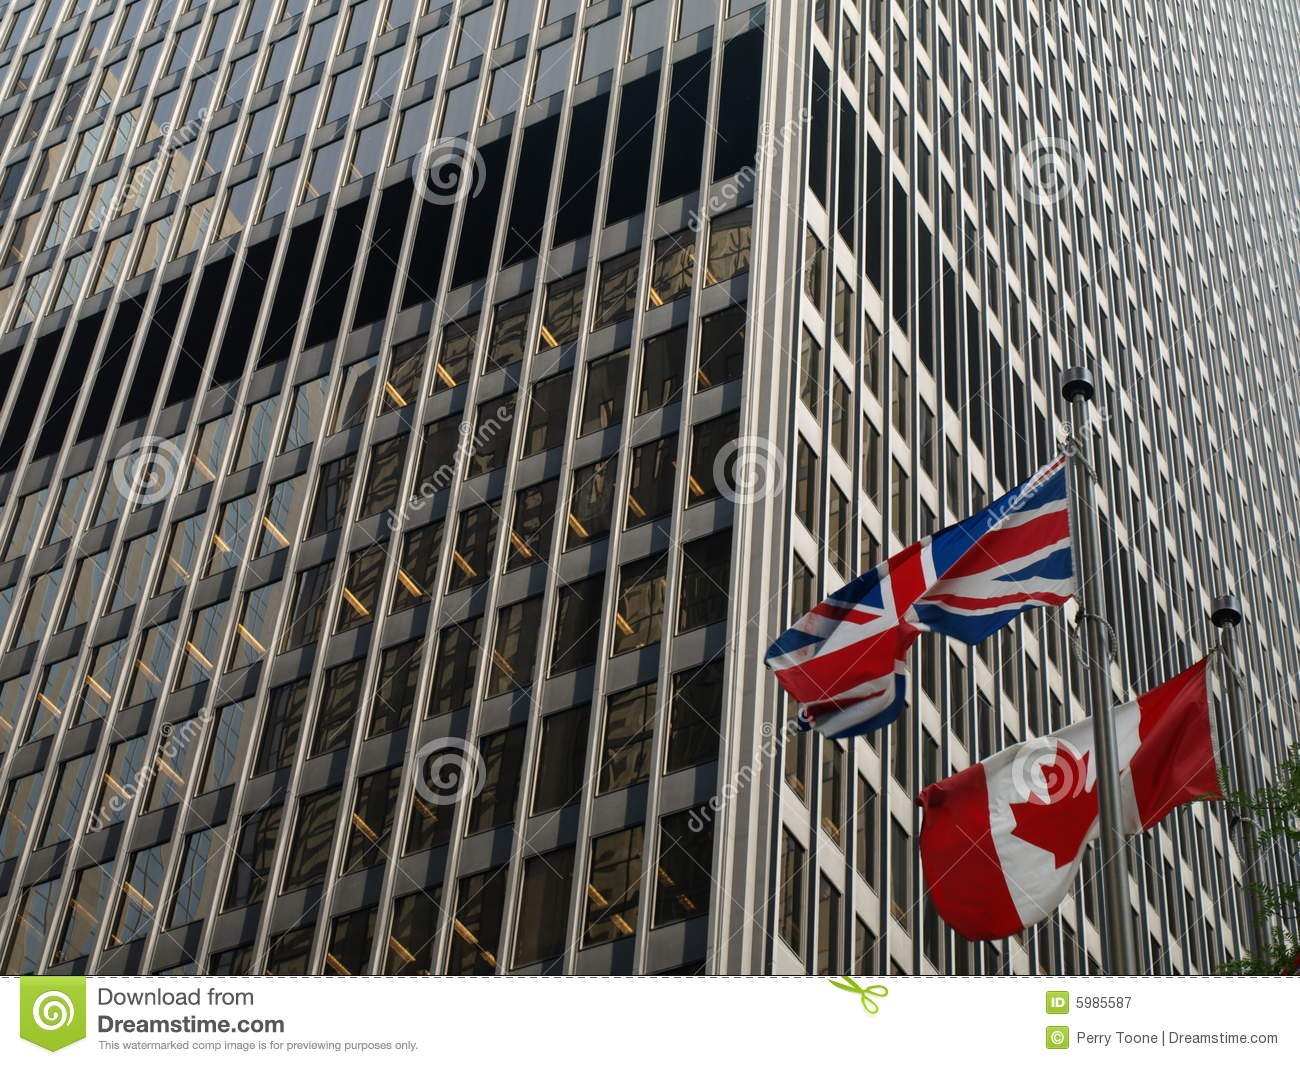 sino canada relationship to britain